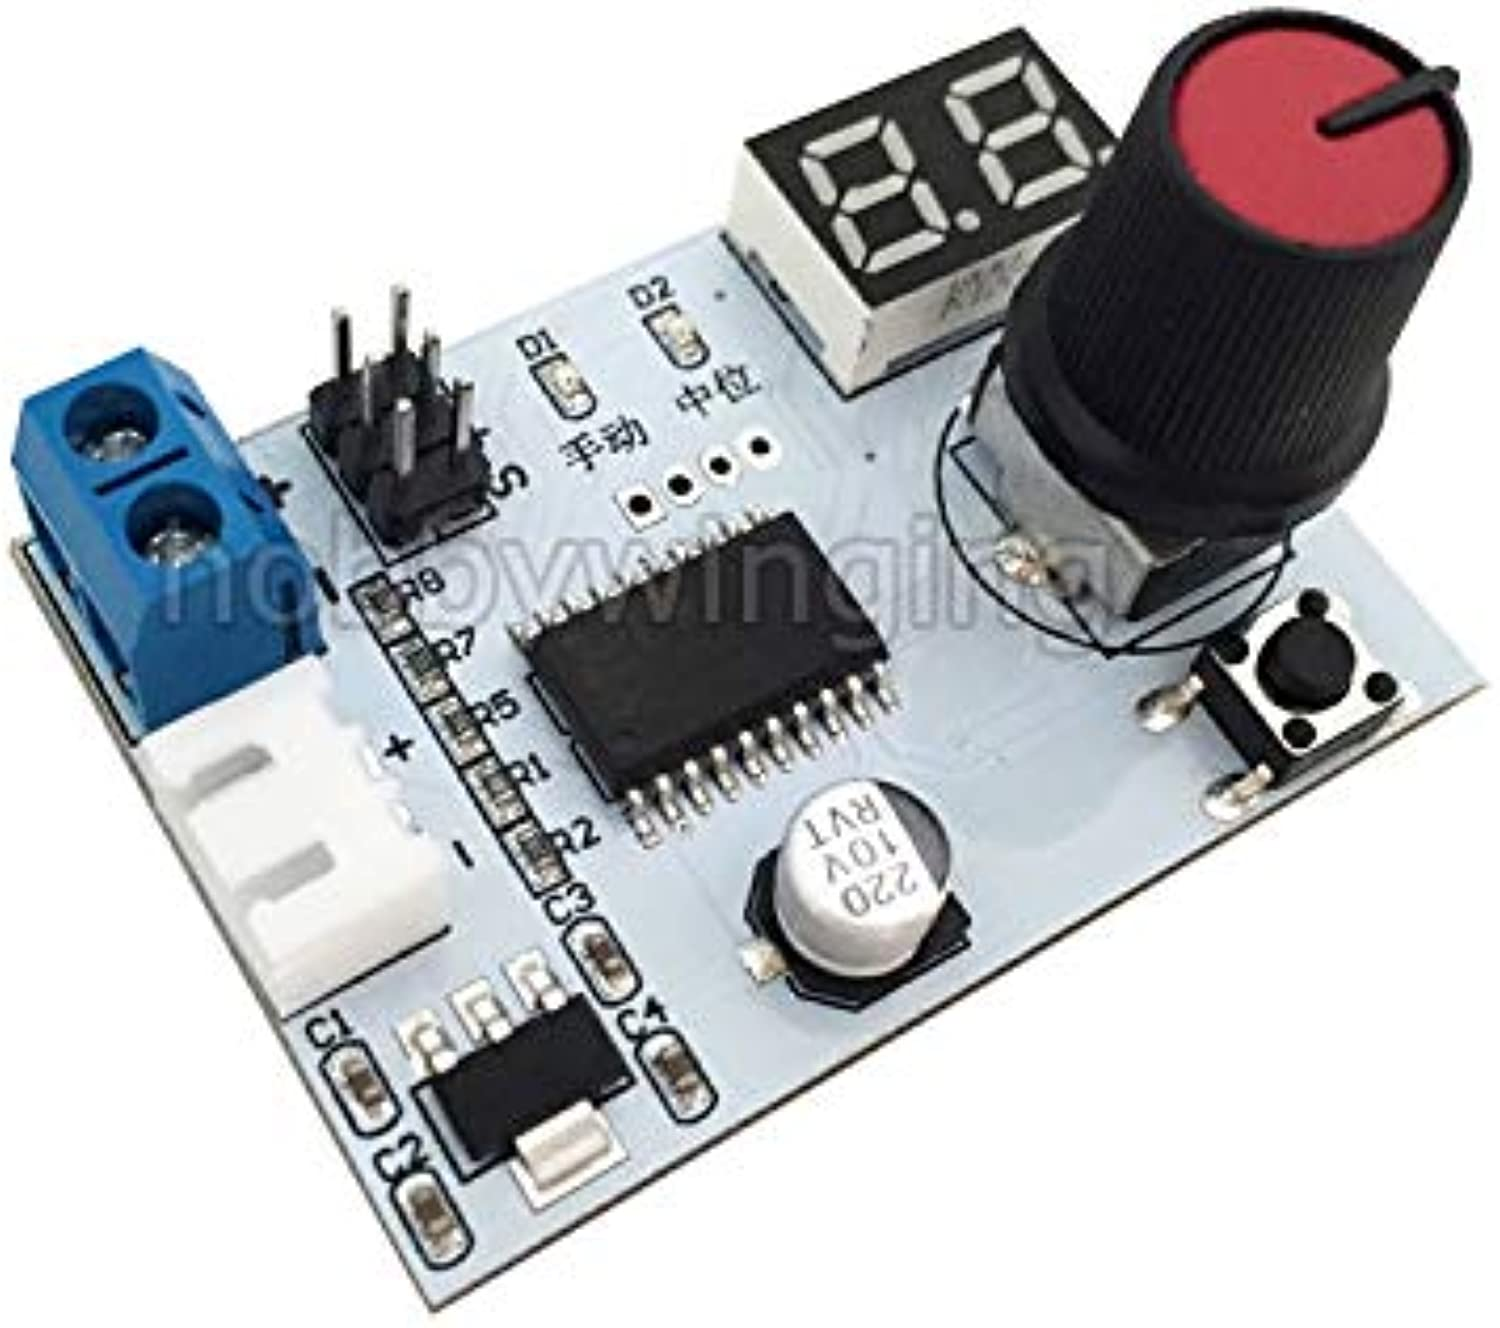 Generic Servo Tester and Voltage Display 2 in 1 Servo Controller DIY for RC Car Robot